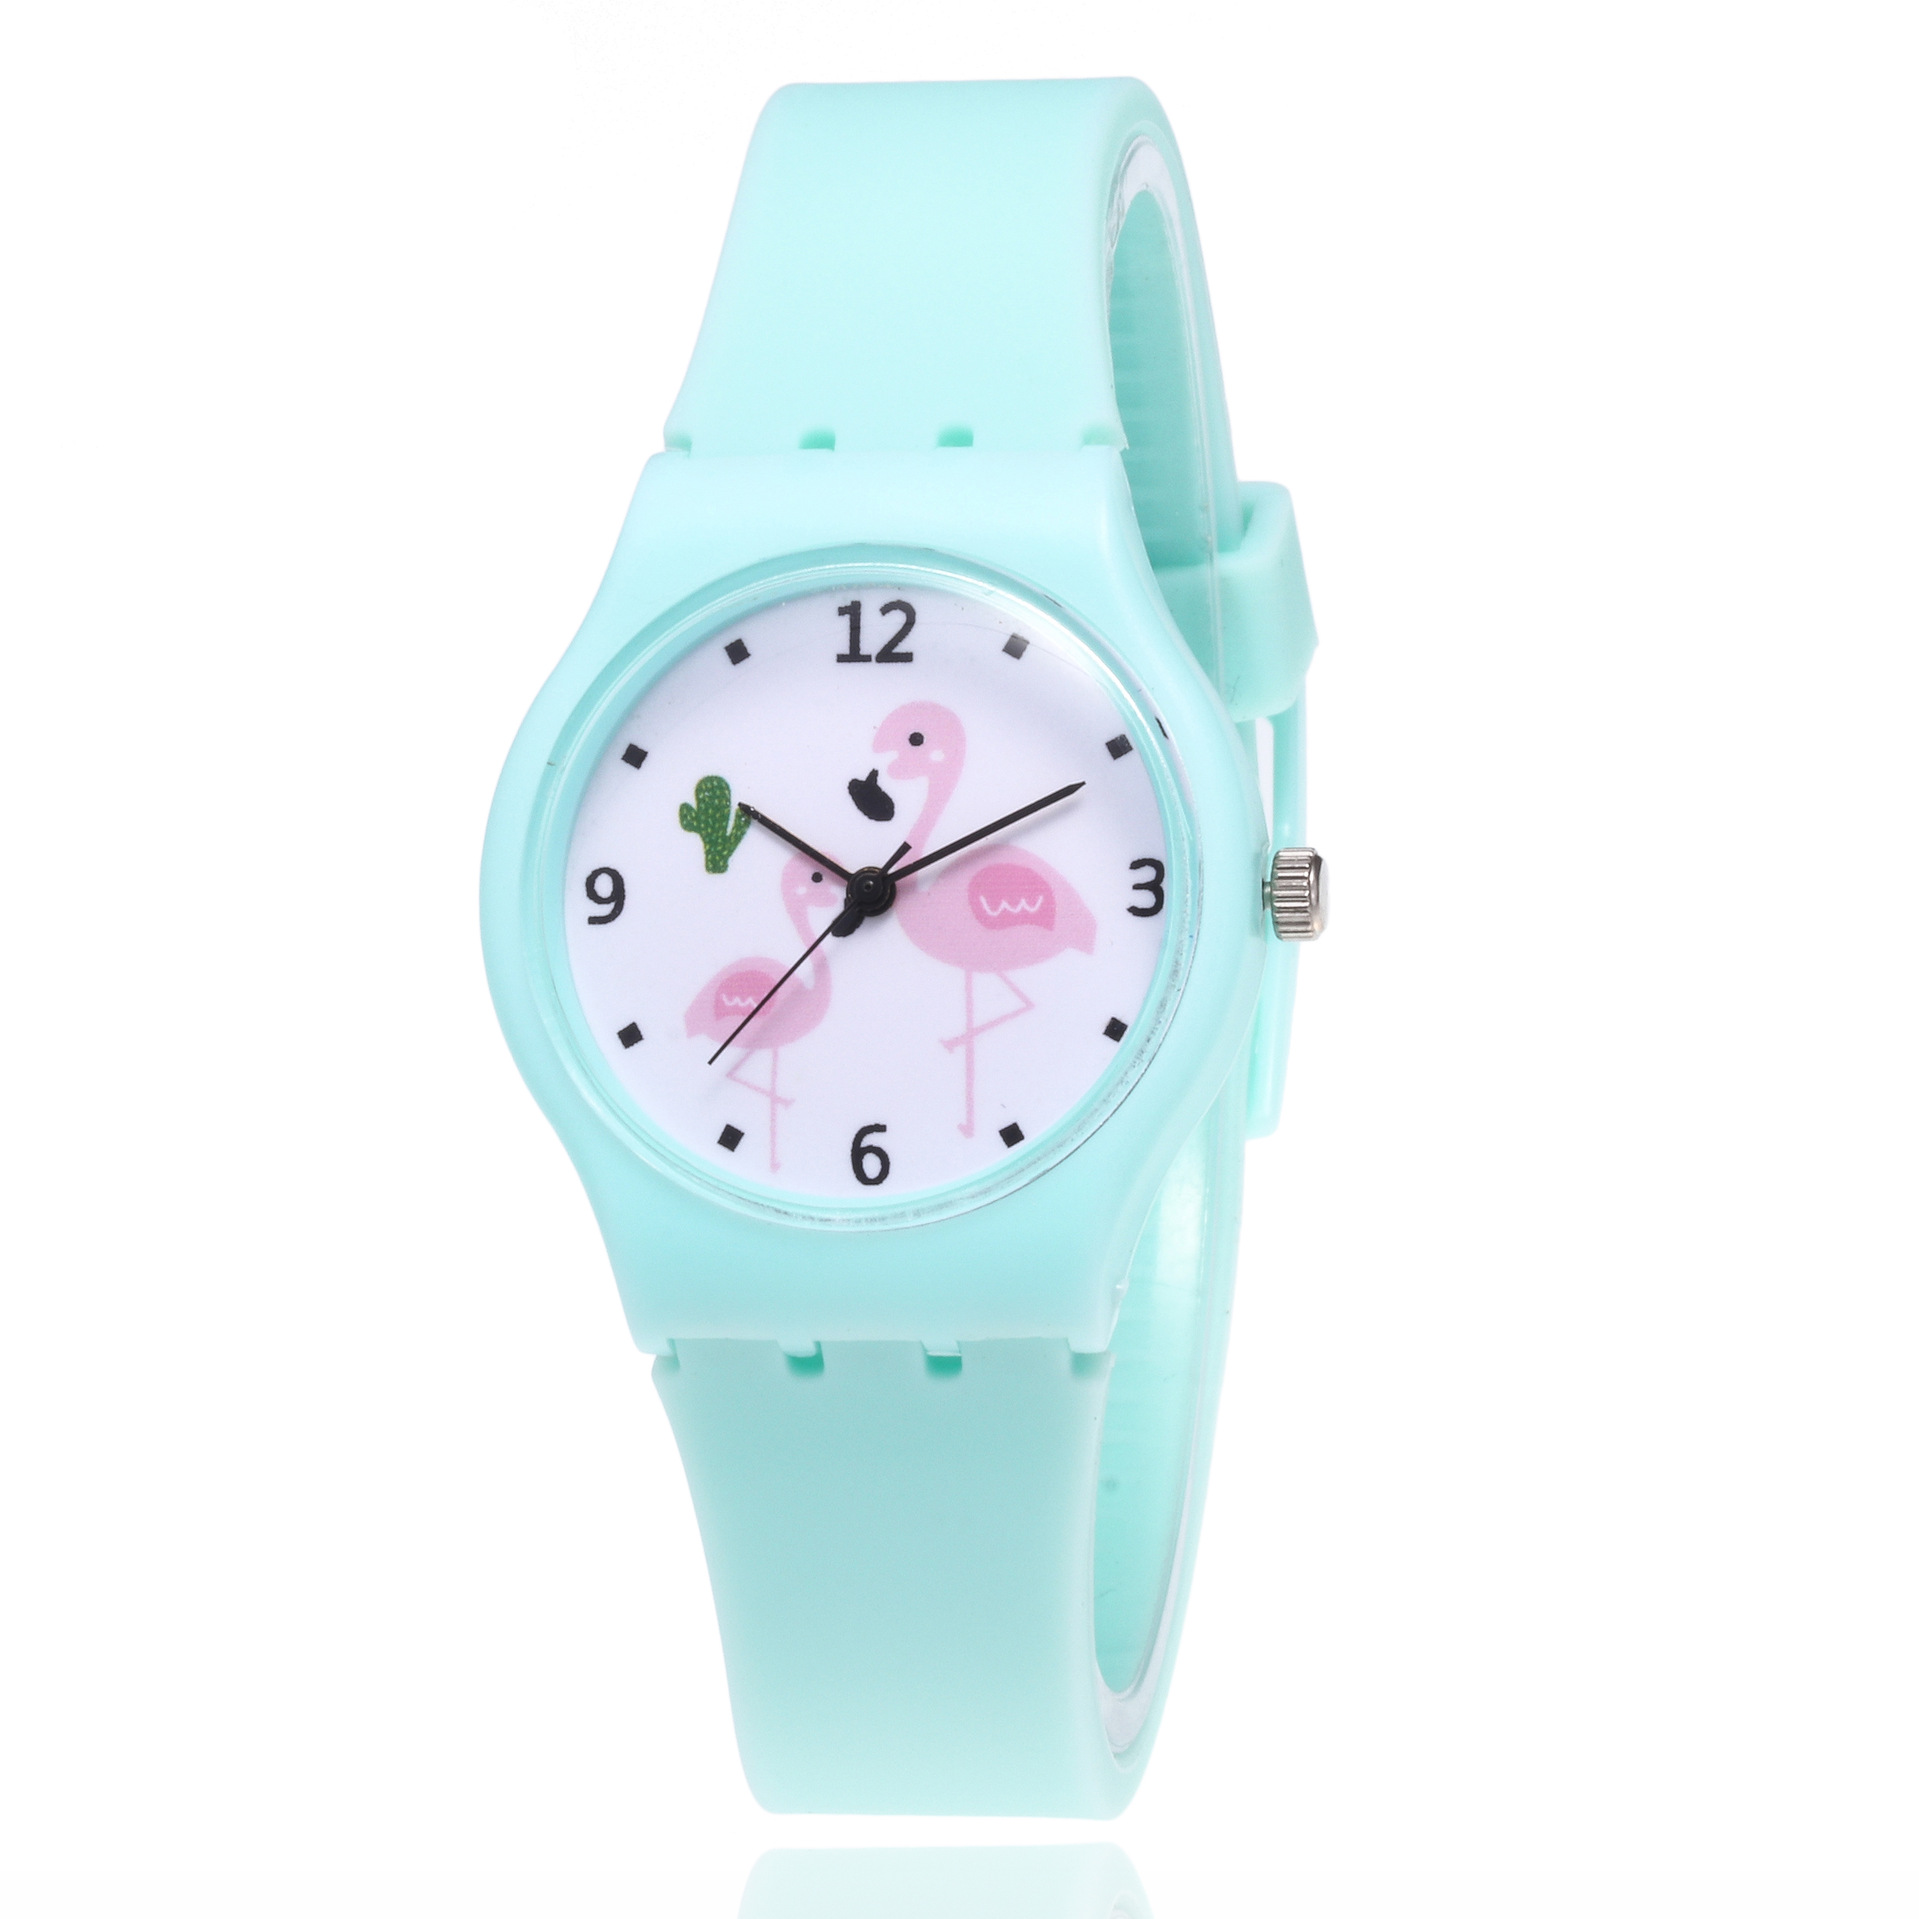 Permalink to Children's Watches Women quartz Sport Watch for Boys Girls Men Silicone Bracelet Wrist Watches student watch fashion dropship